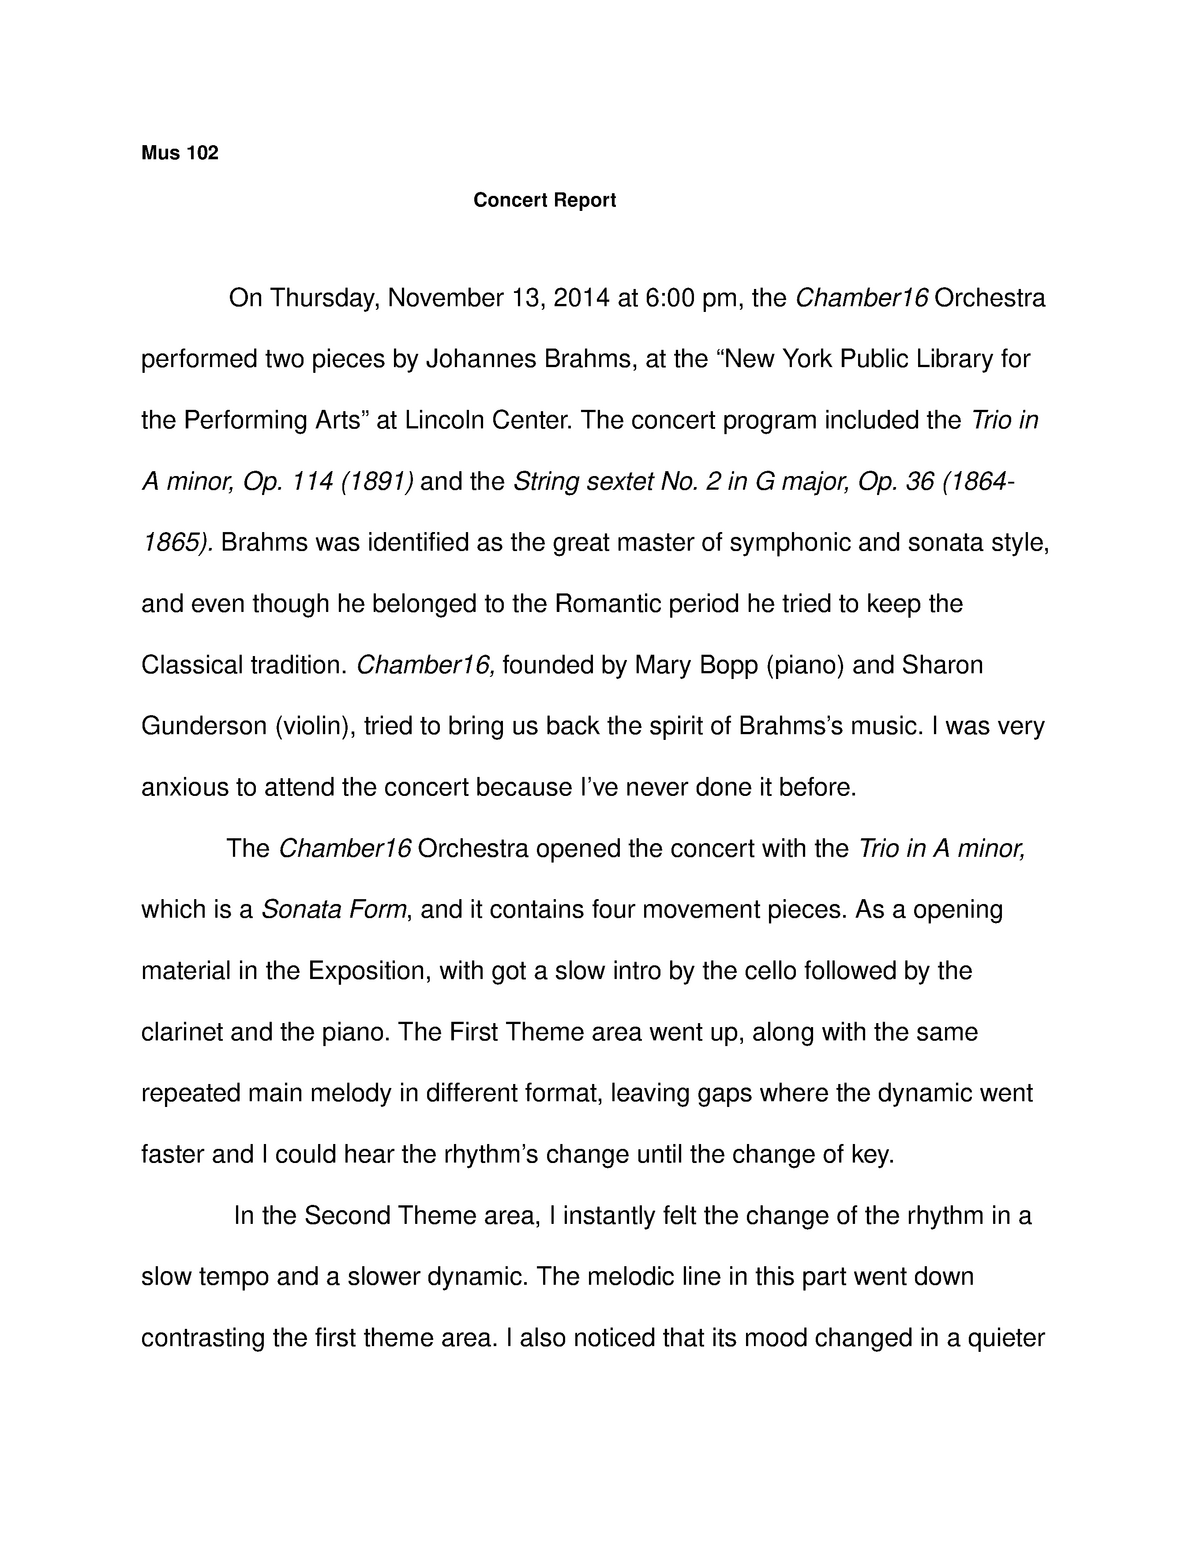 concert report essay for my music class